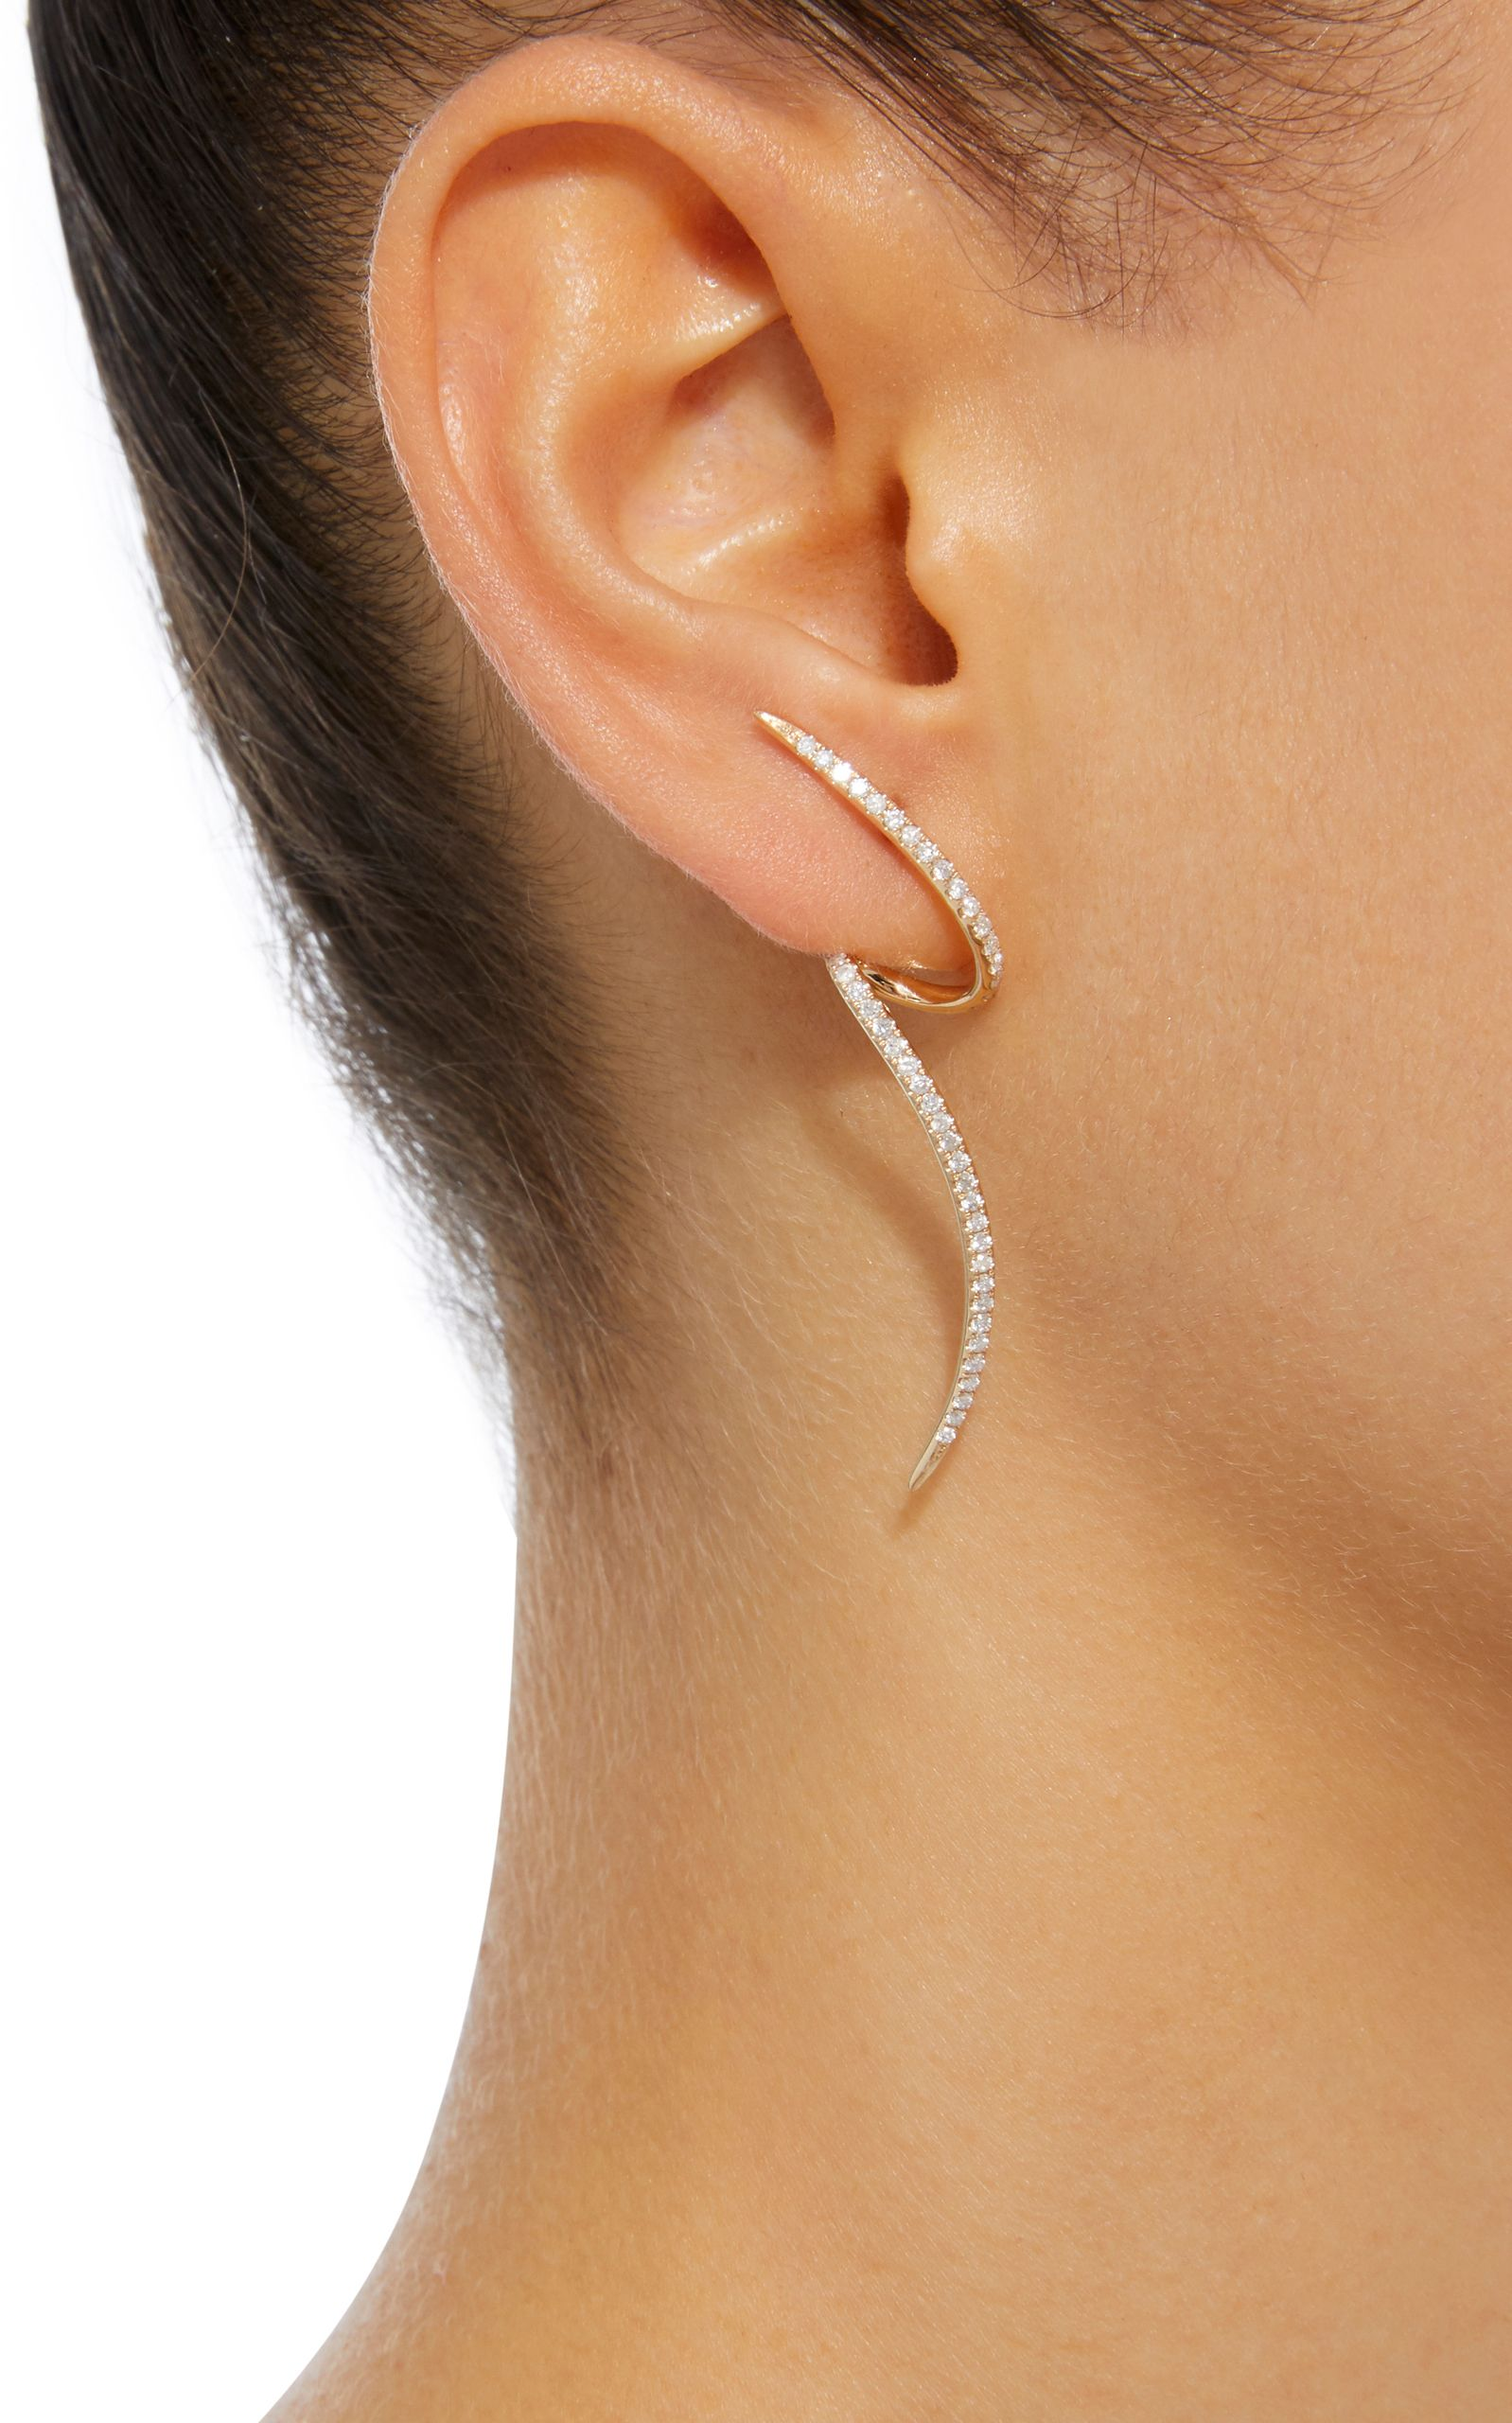 earrings tash non view gold jewelry maria fullscreen in lyst spike rotating single white earring metallic